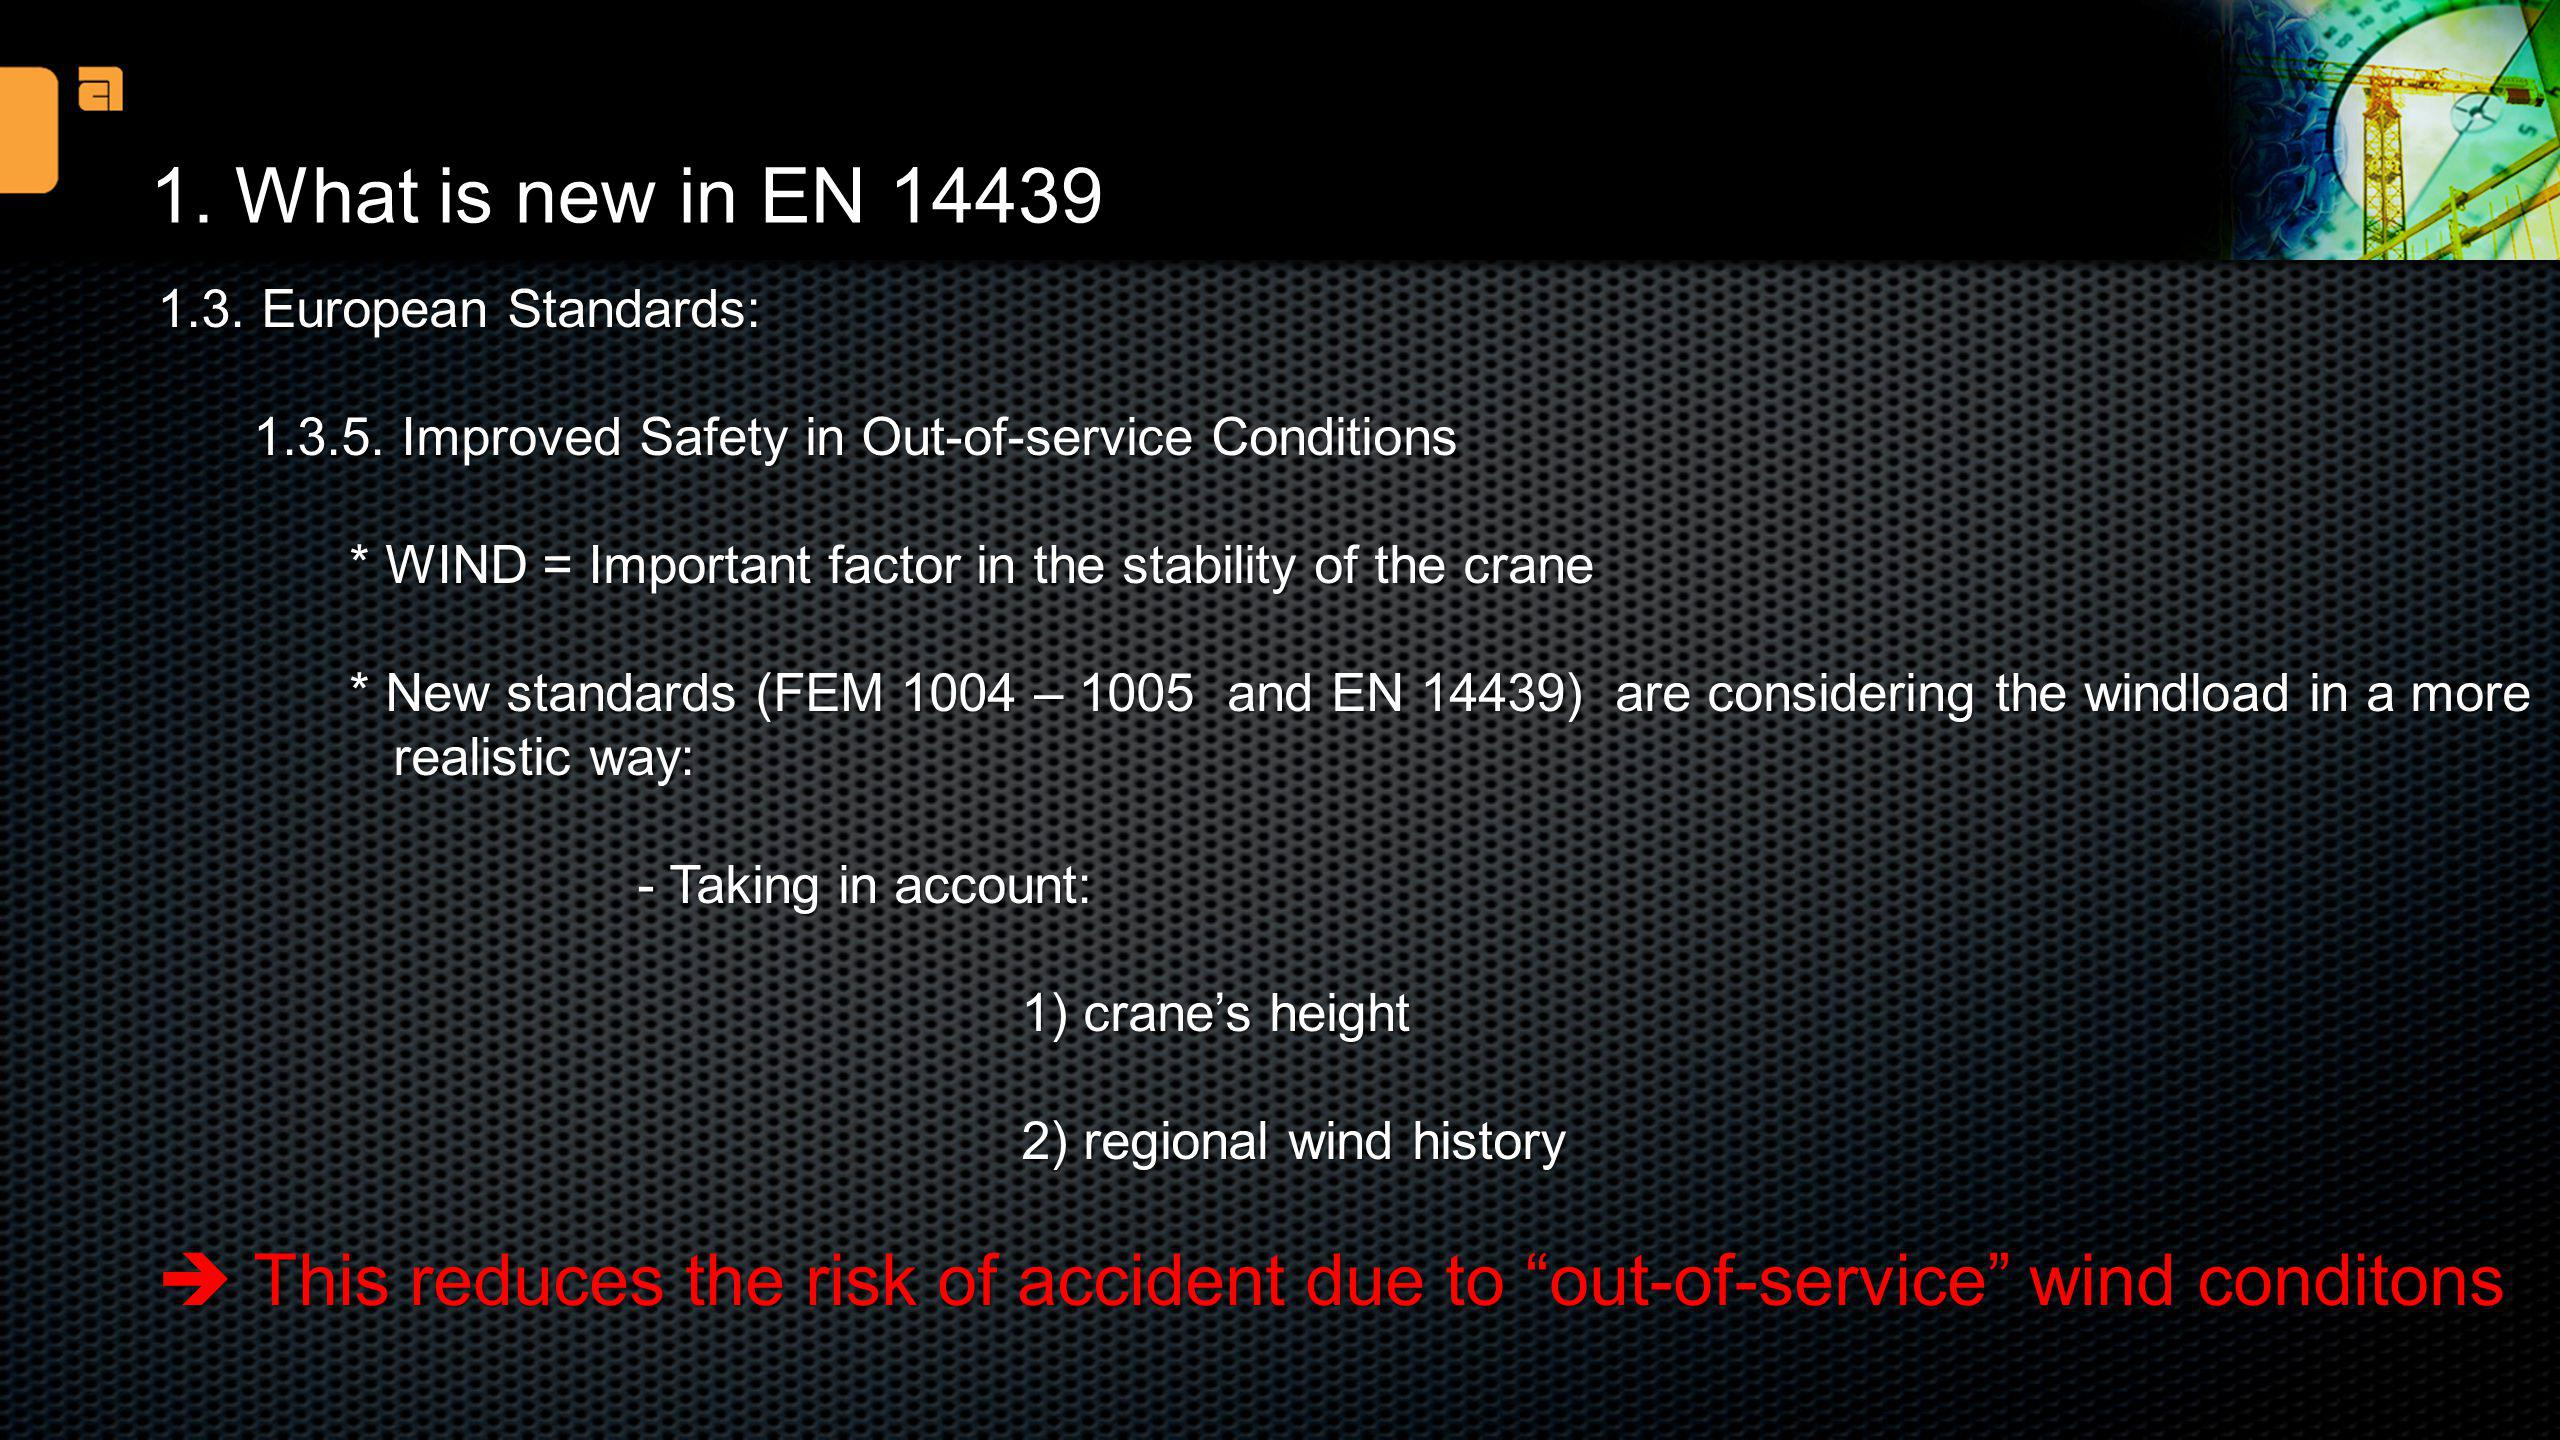 1. What is new in EN 14439 1.3. European Standards: 1.3.5. Improved Safety in Out-of-service Conditions.